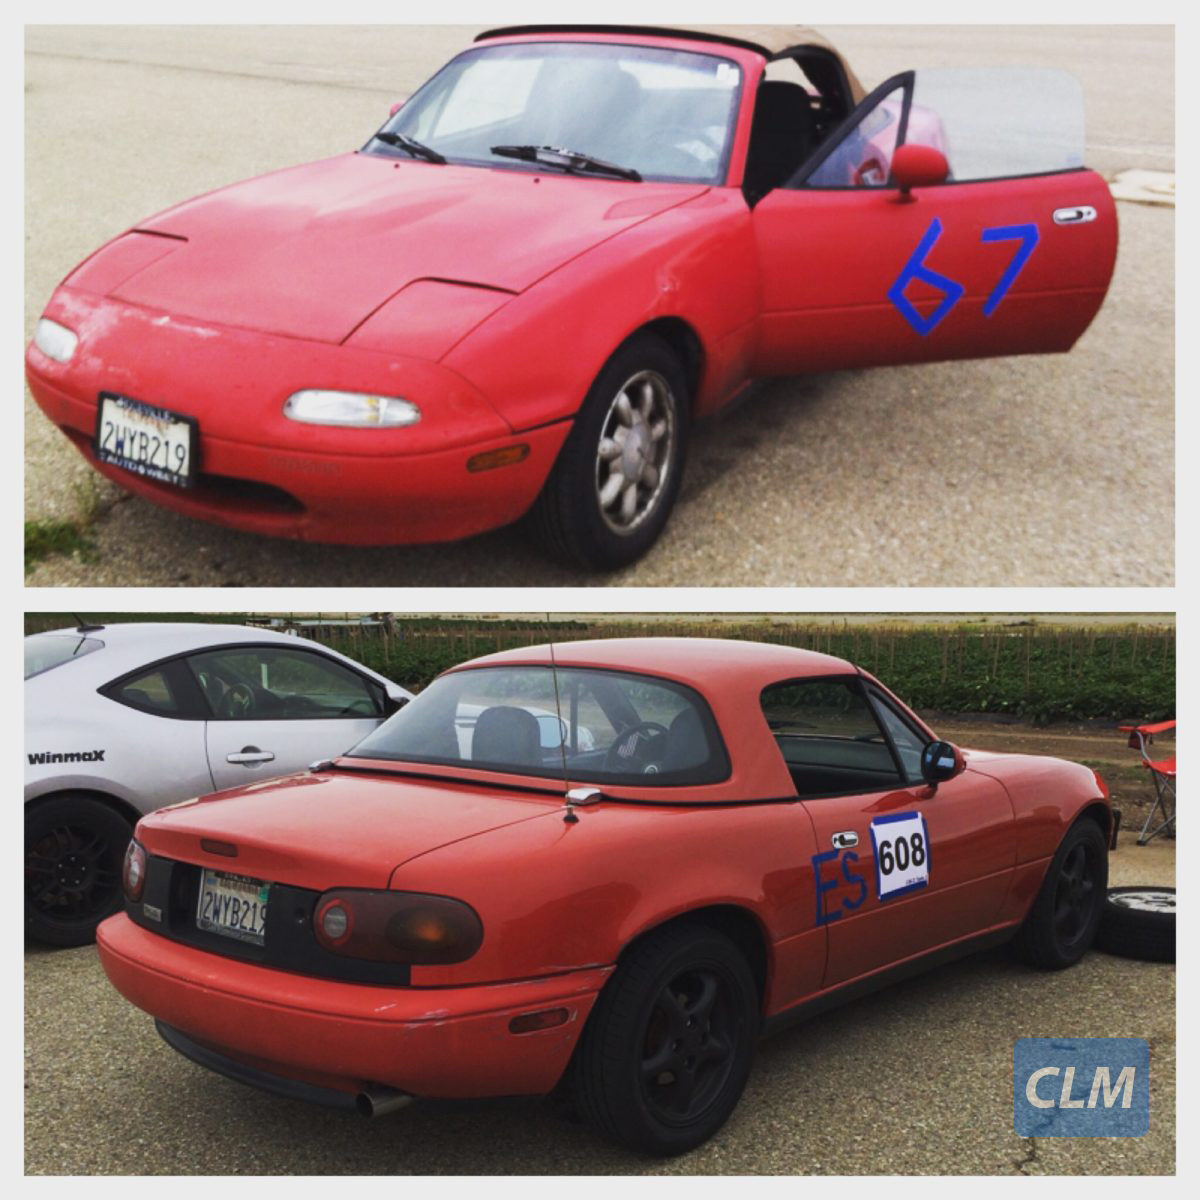 The Craigslist Miata You Could Find One For Less But I Needed It To Have Paint